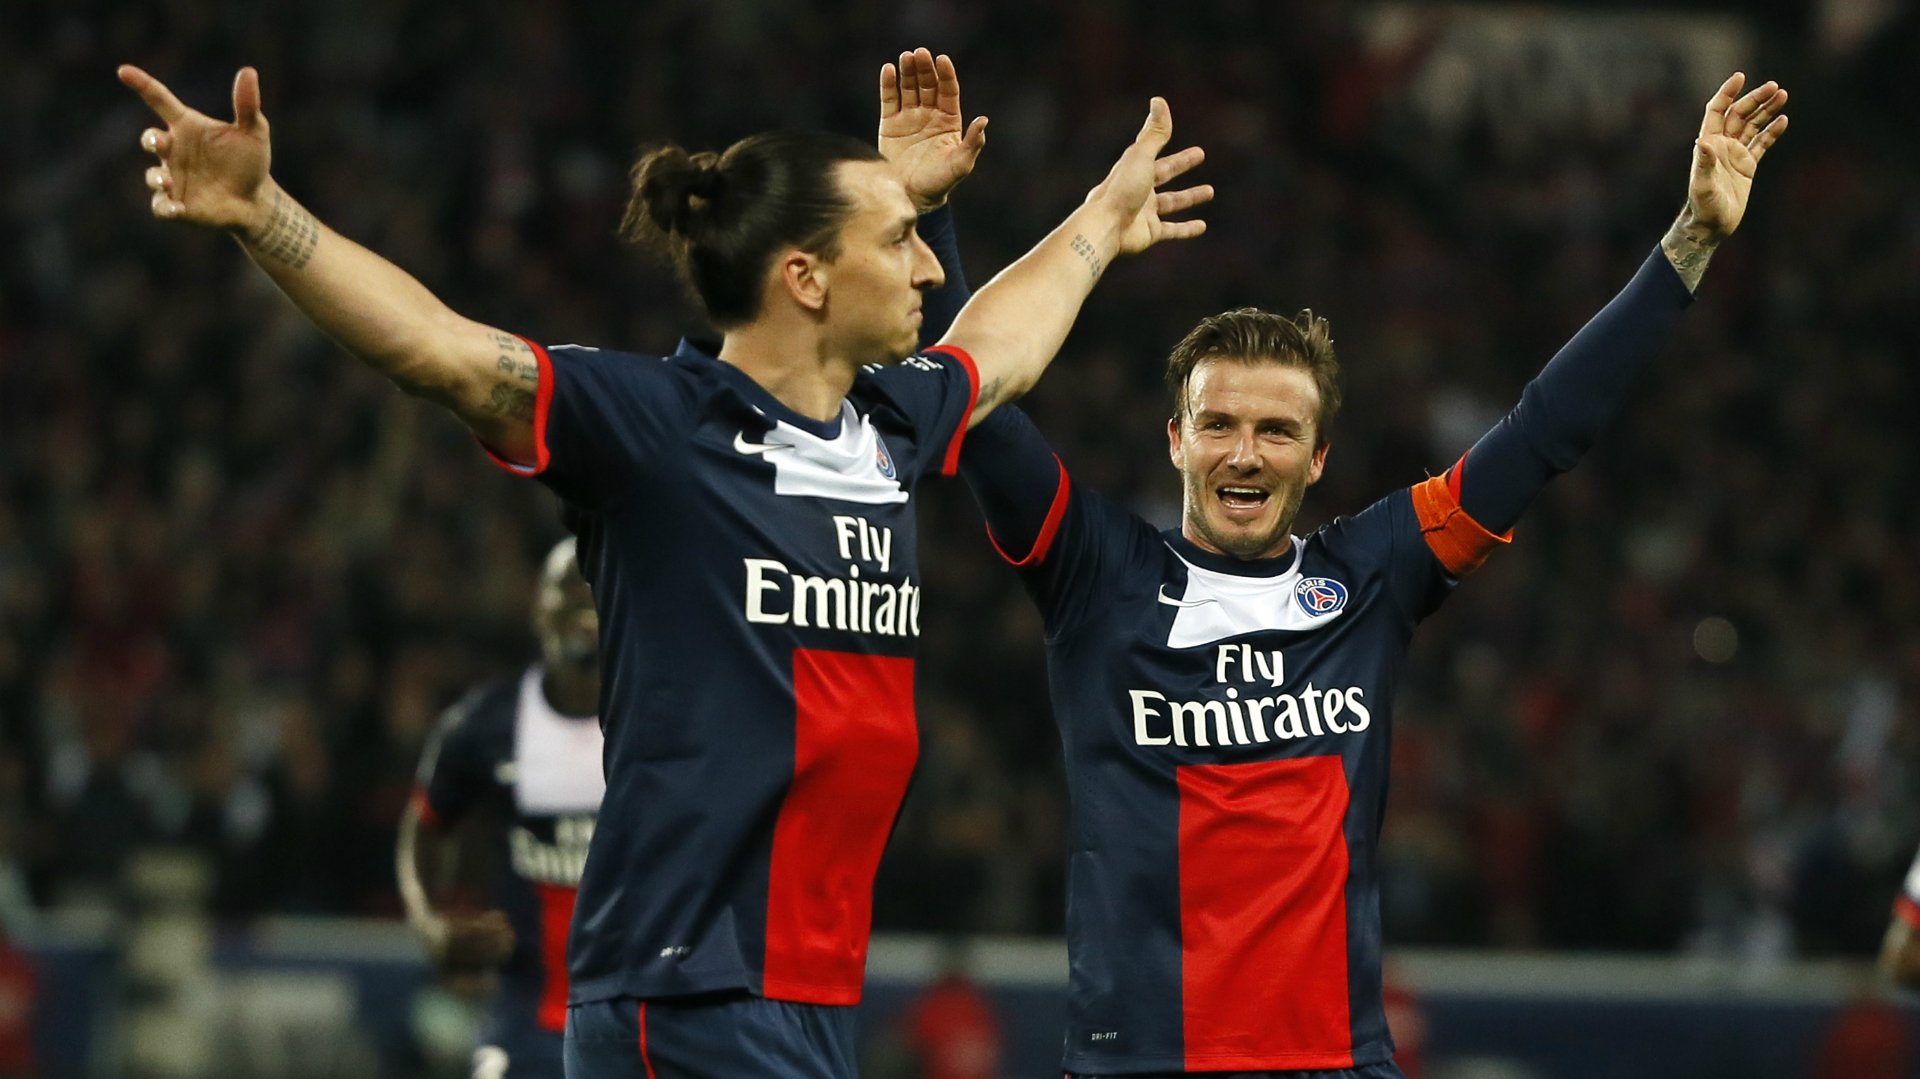 zlatan ibrahimovic david beckham psg zhr7s283h1zz1v61jbl5njnao - ROUND-UP of 30/1/2018 TRANSFER NEWS, DONE DEALS AND RUMOURS